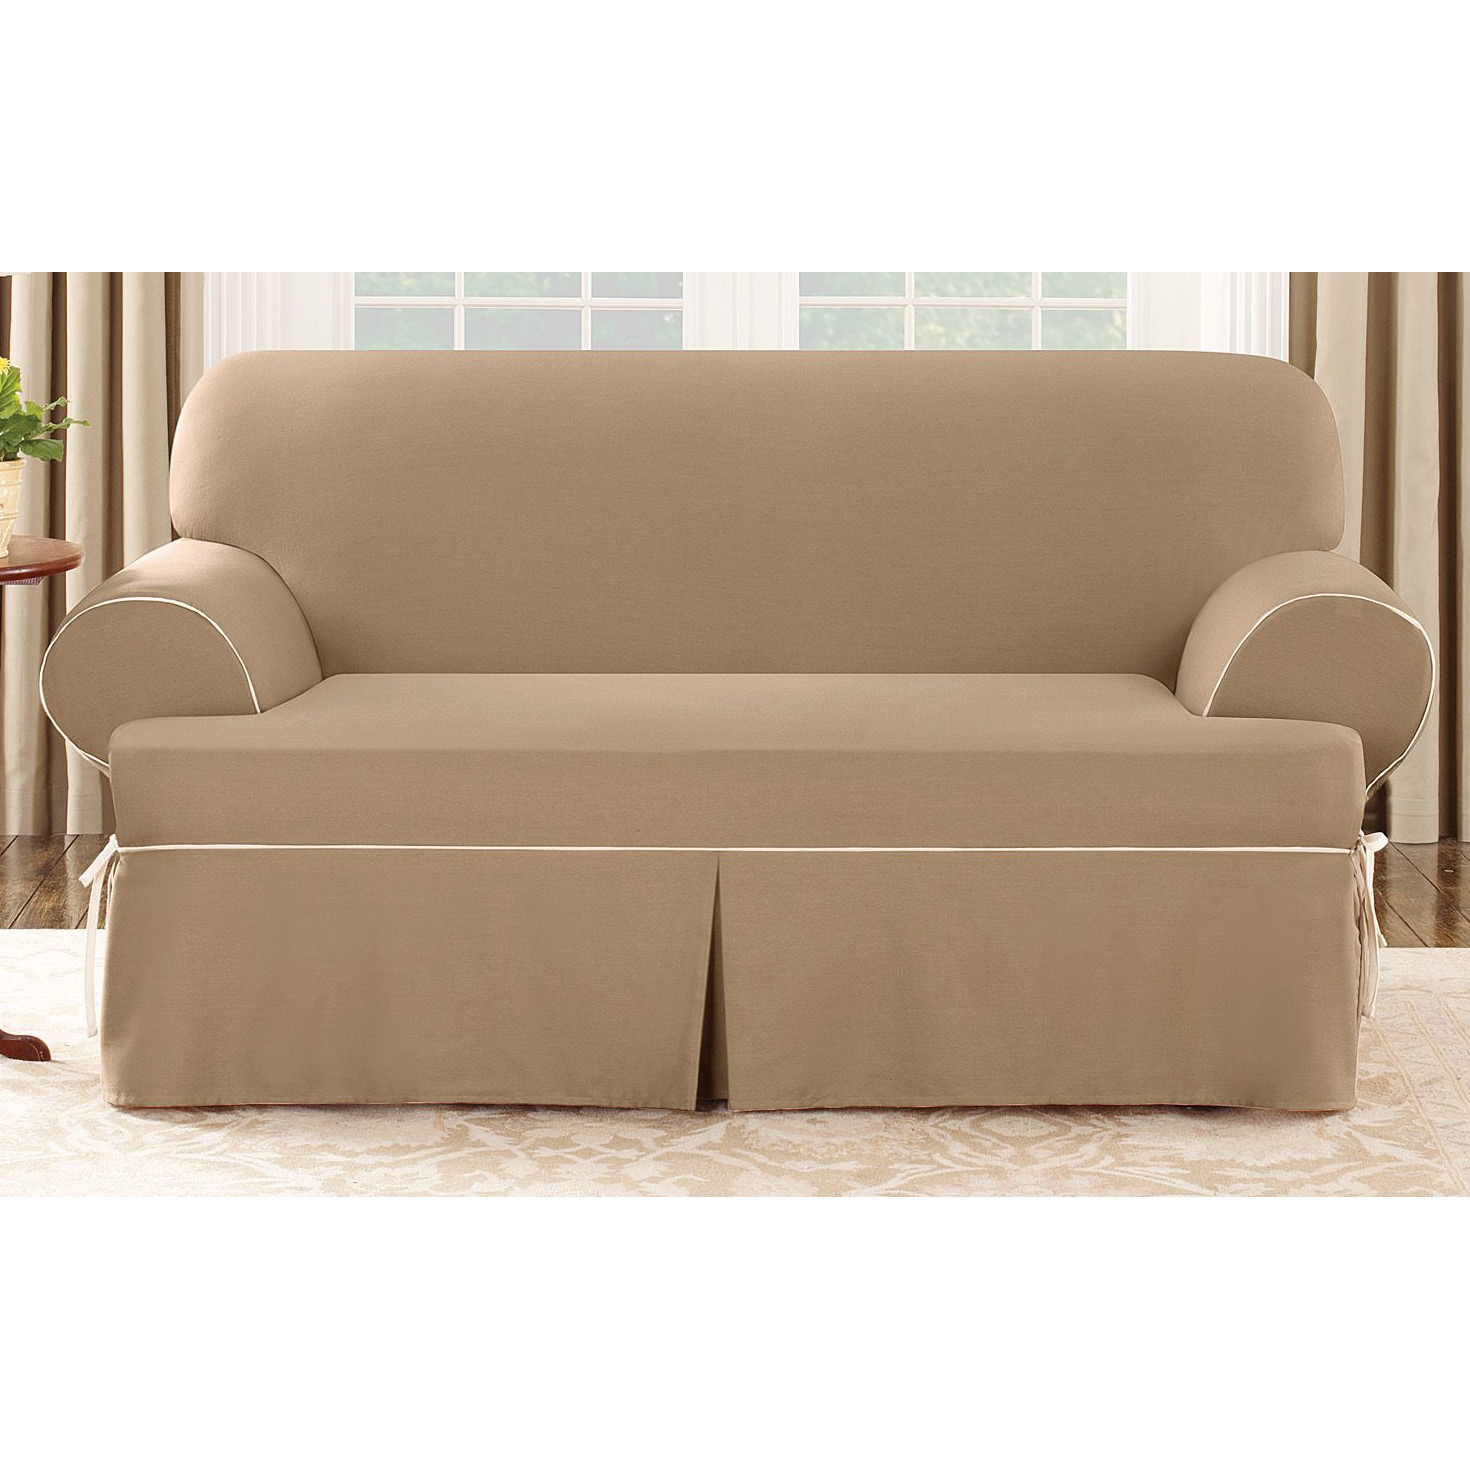 wonderful sofa with tan surefit cover before a glass door with beige curtain for living room decor ideas